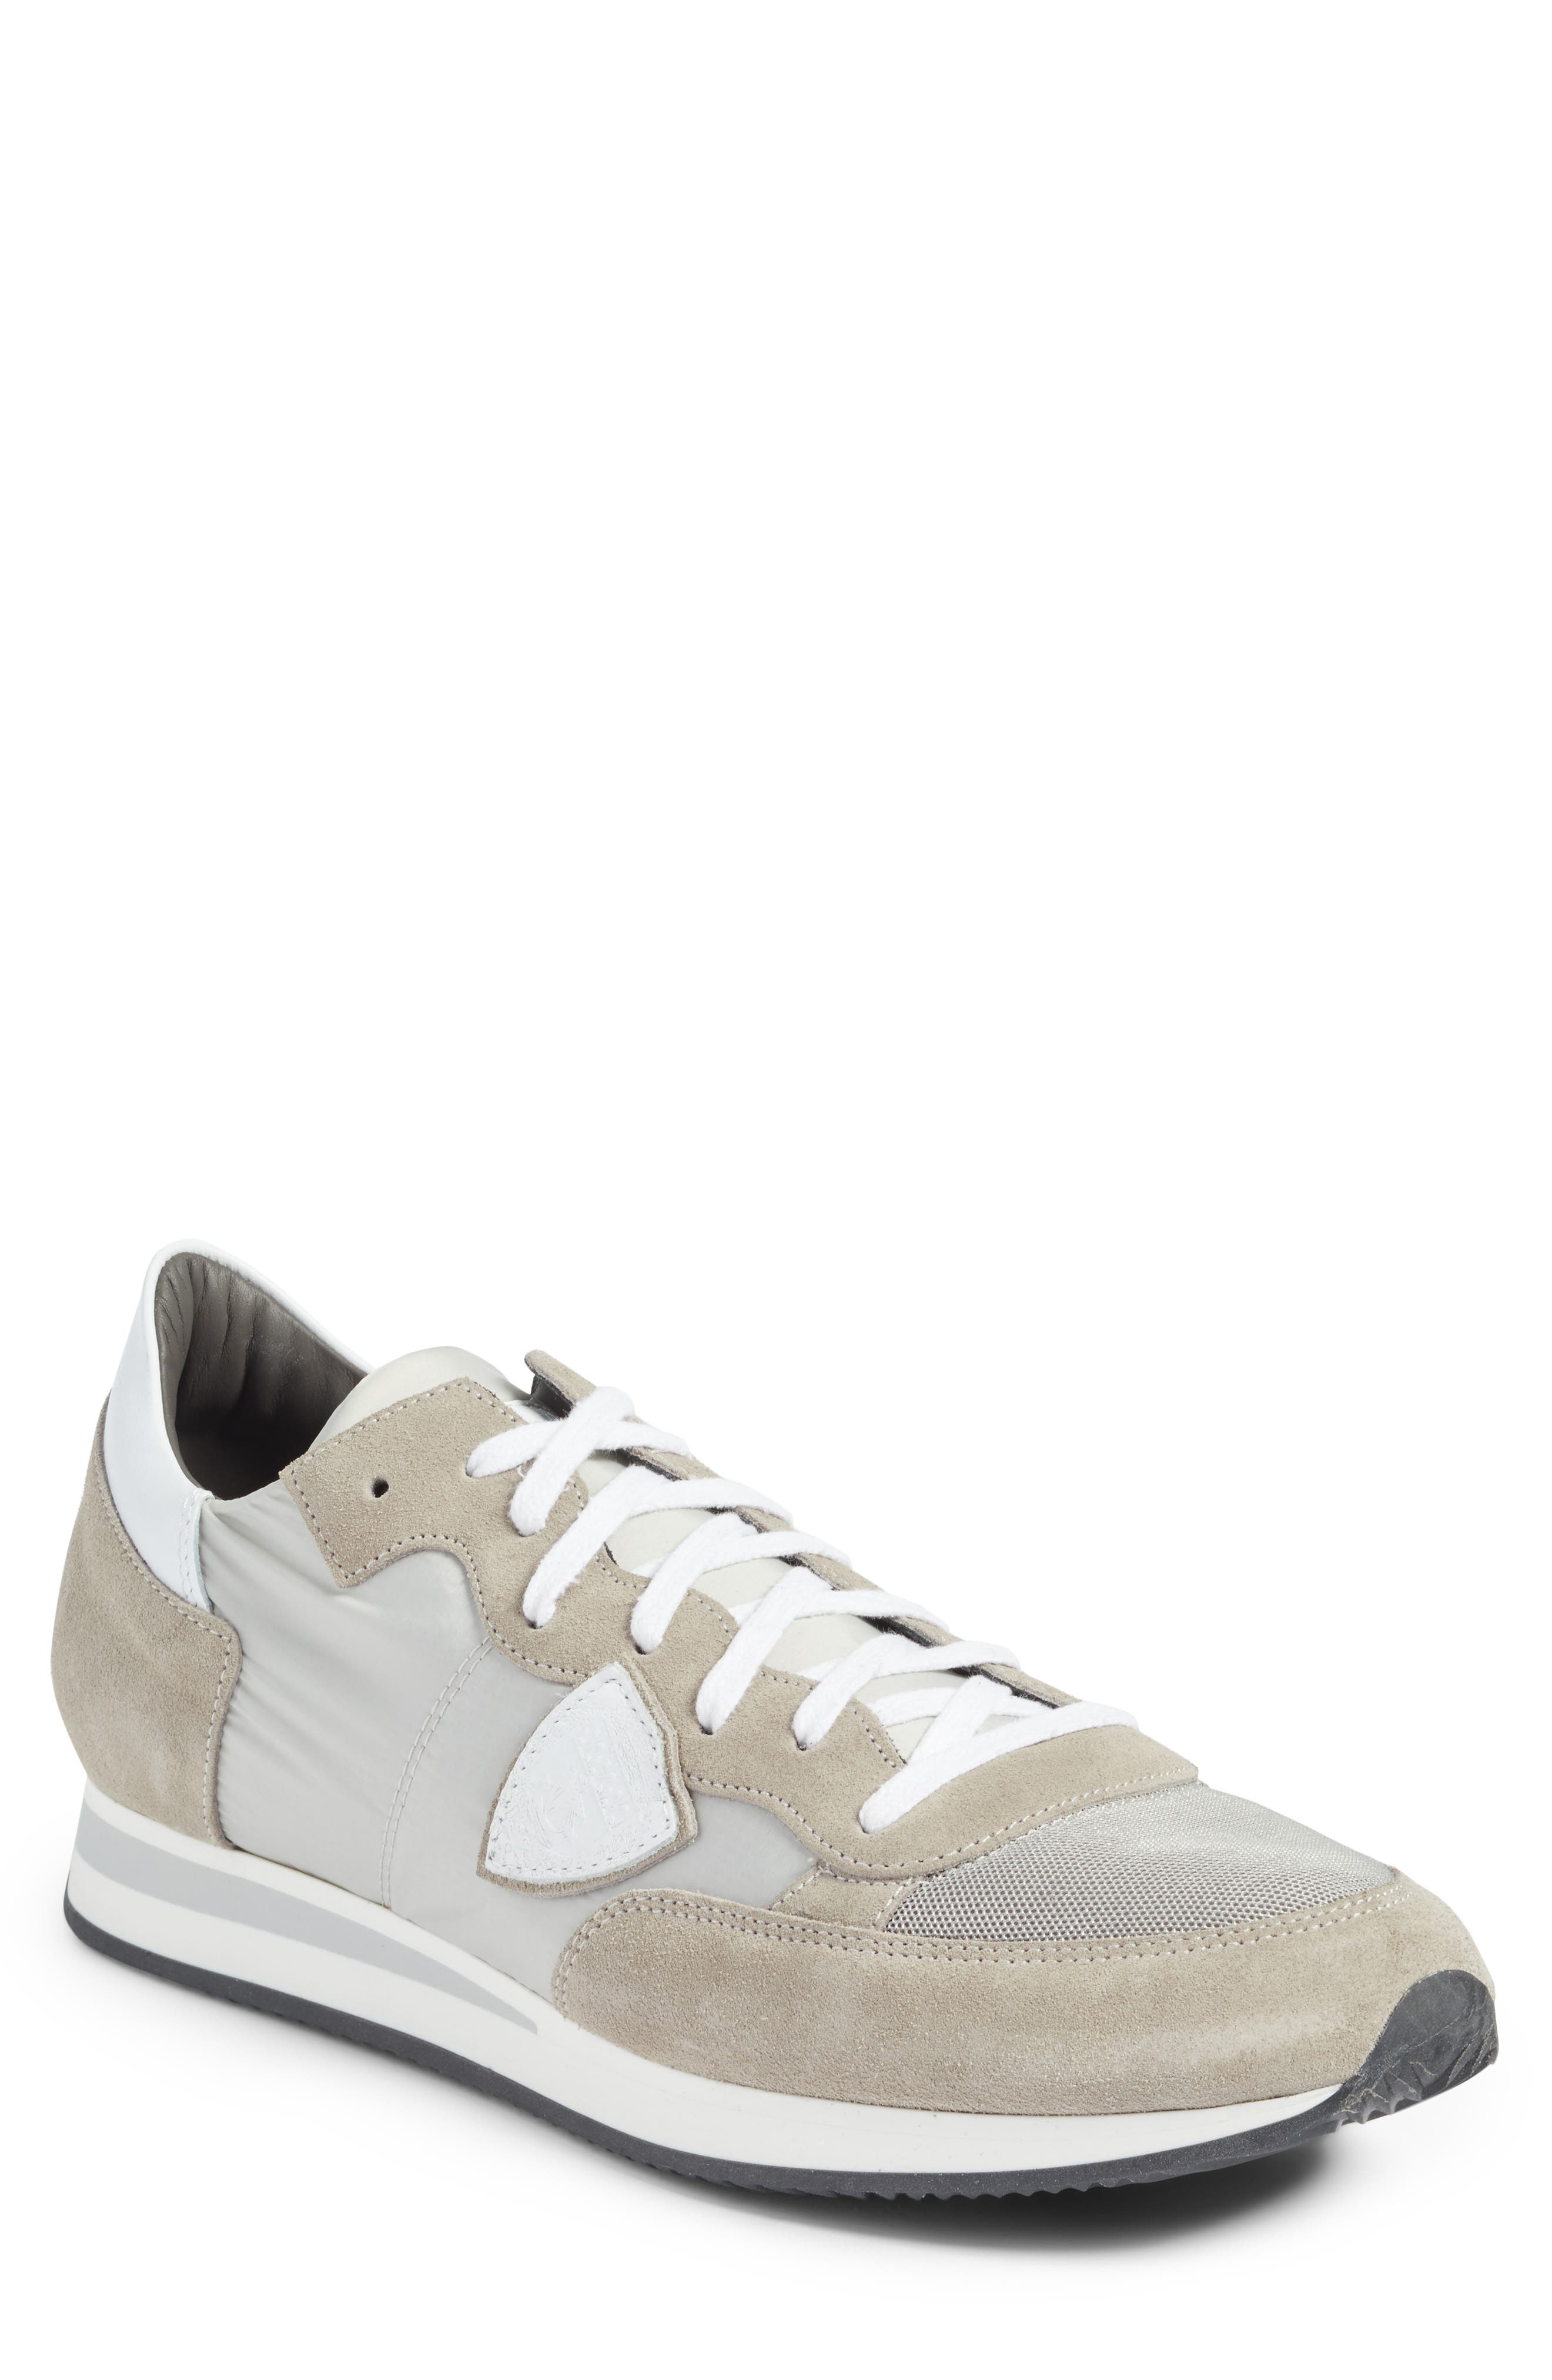 Tropez Low Top Sneaker,                         Main,                         color, Grey/ White